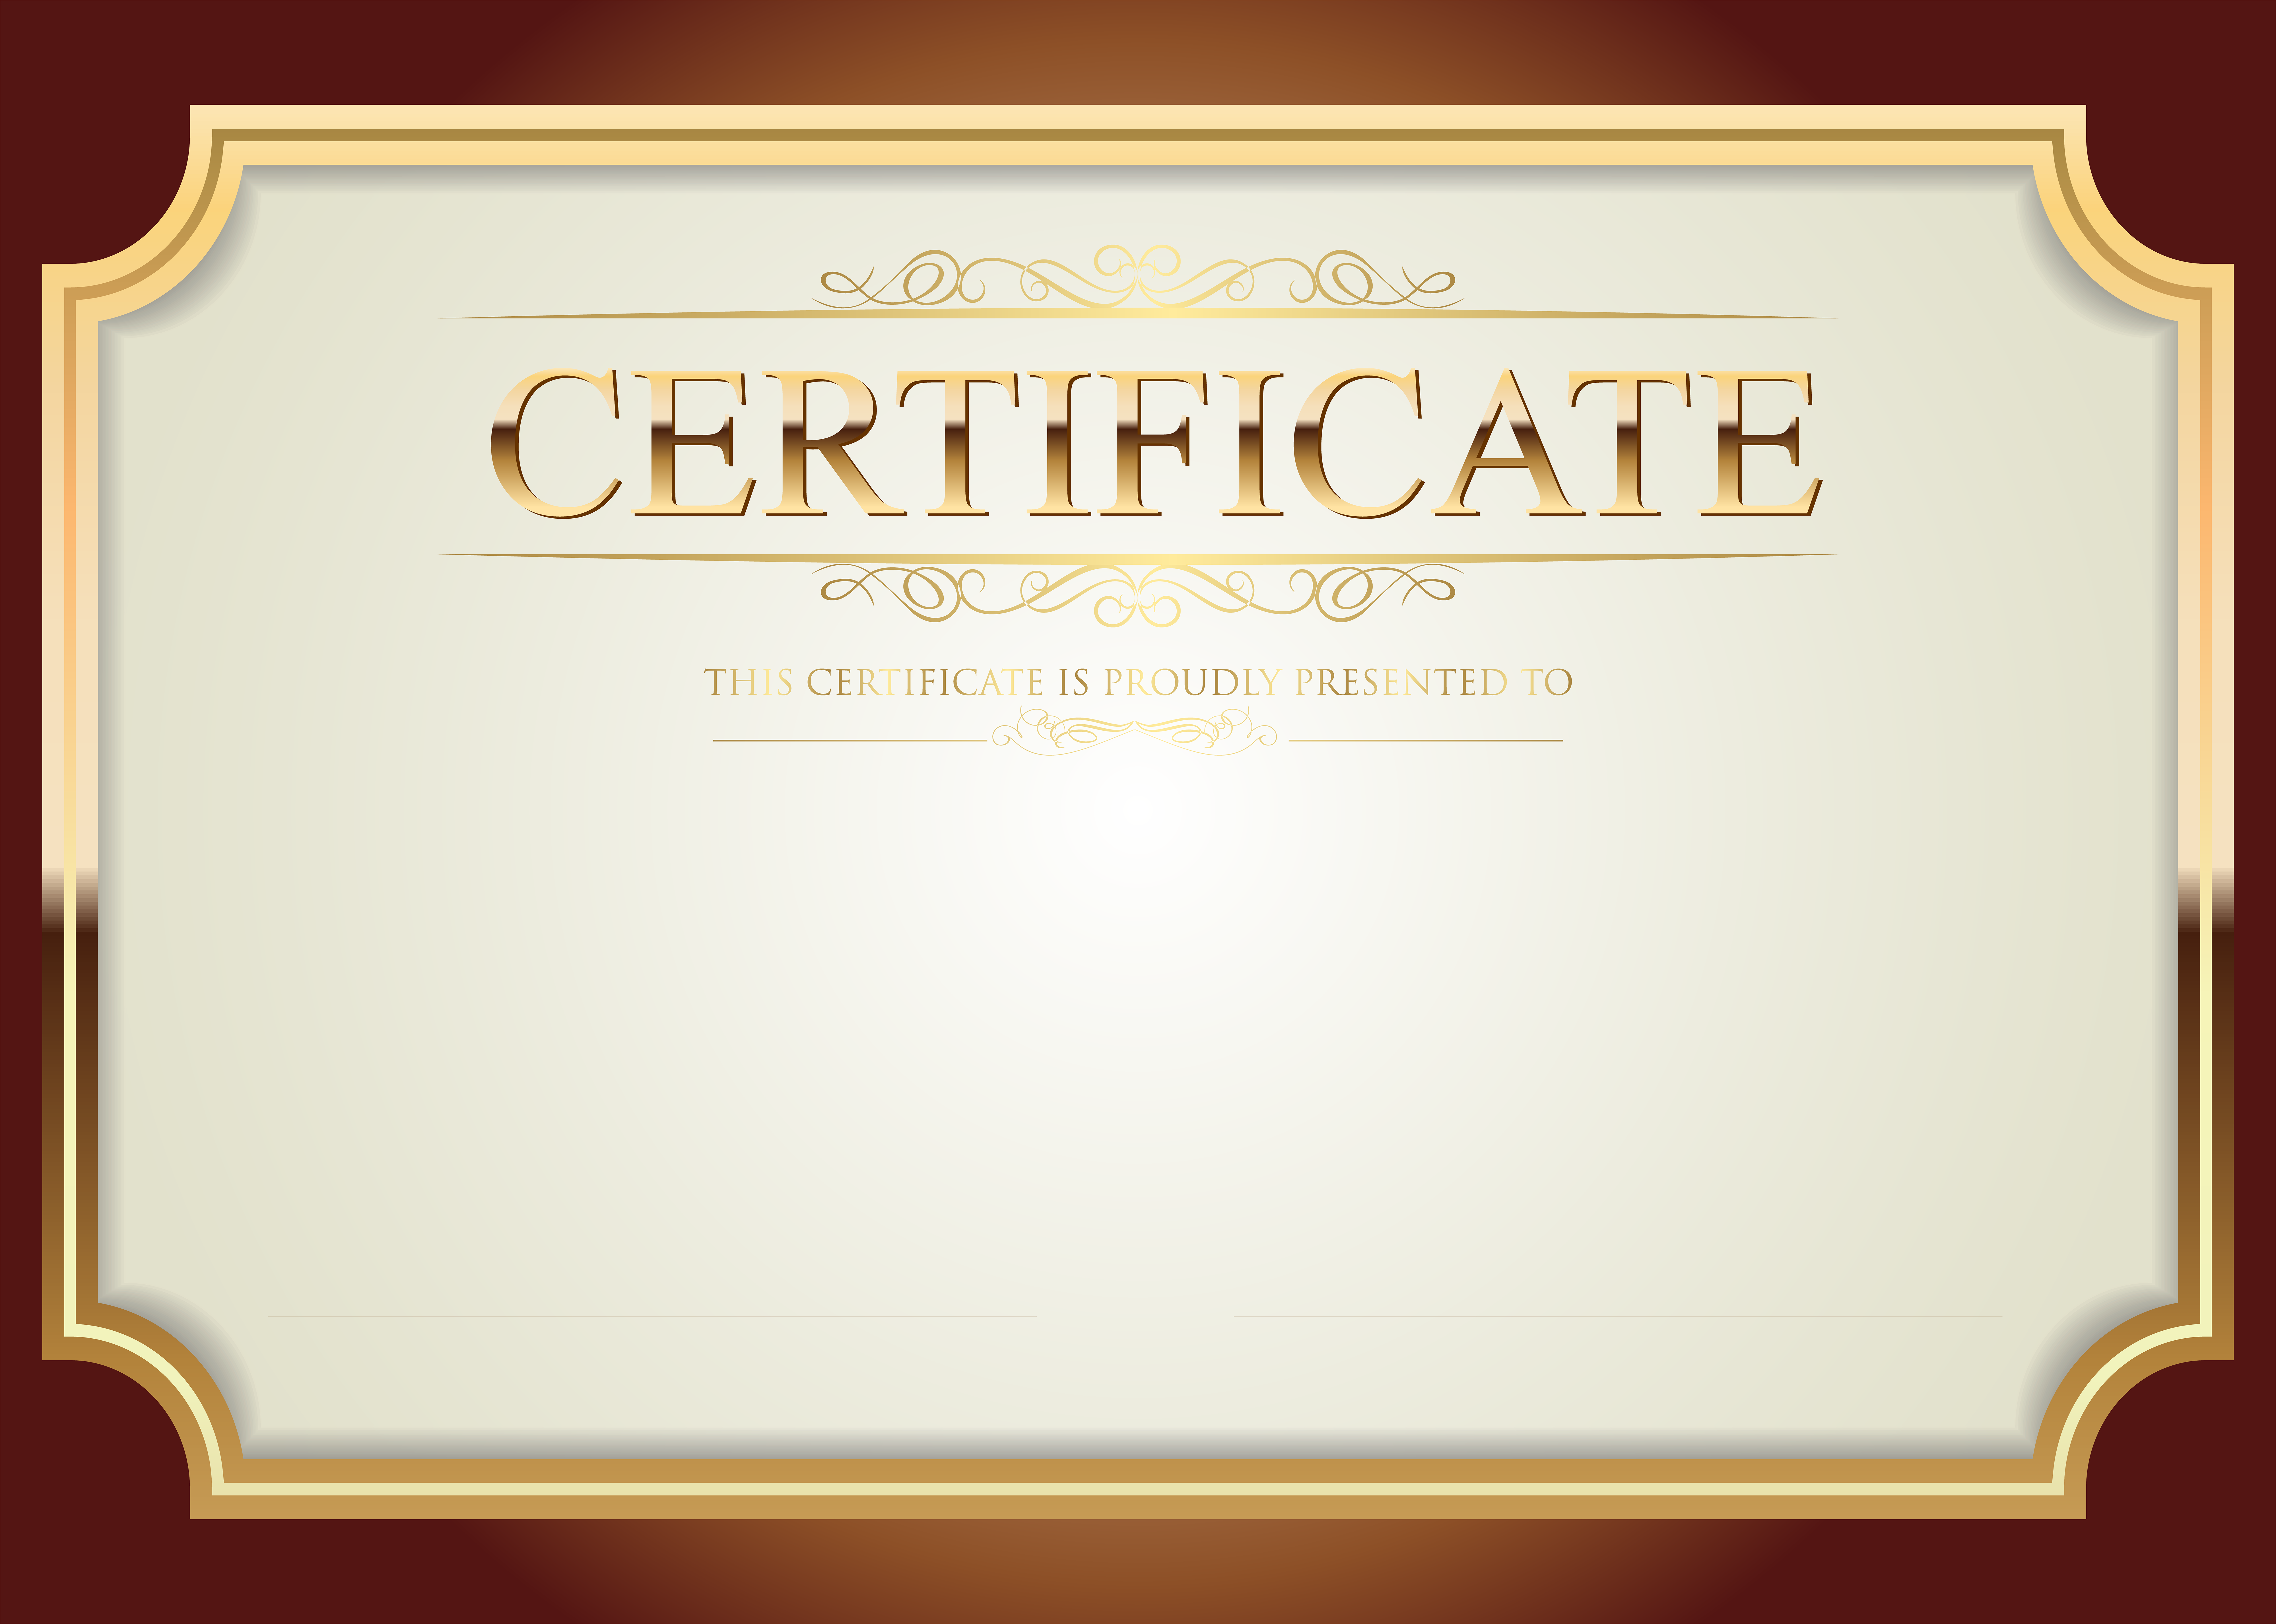 Certificate template png clip art gallery yopriceville high certificate template png clip art gallery yopriceville high quality images and transparent yelopaper Images